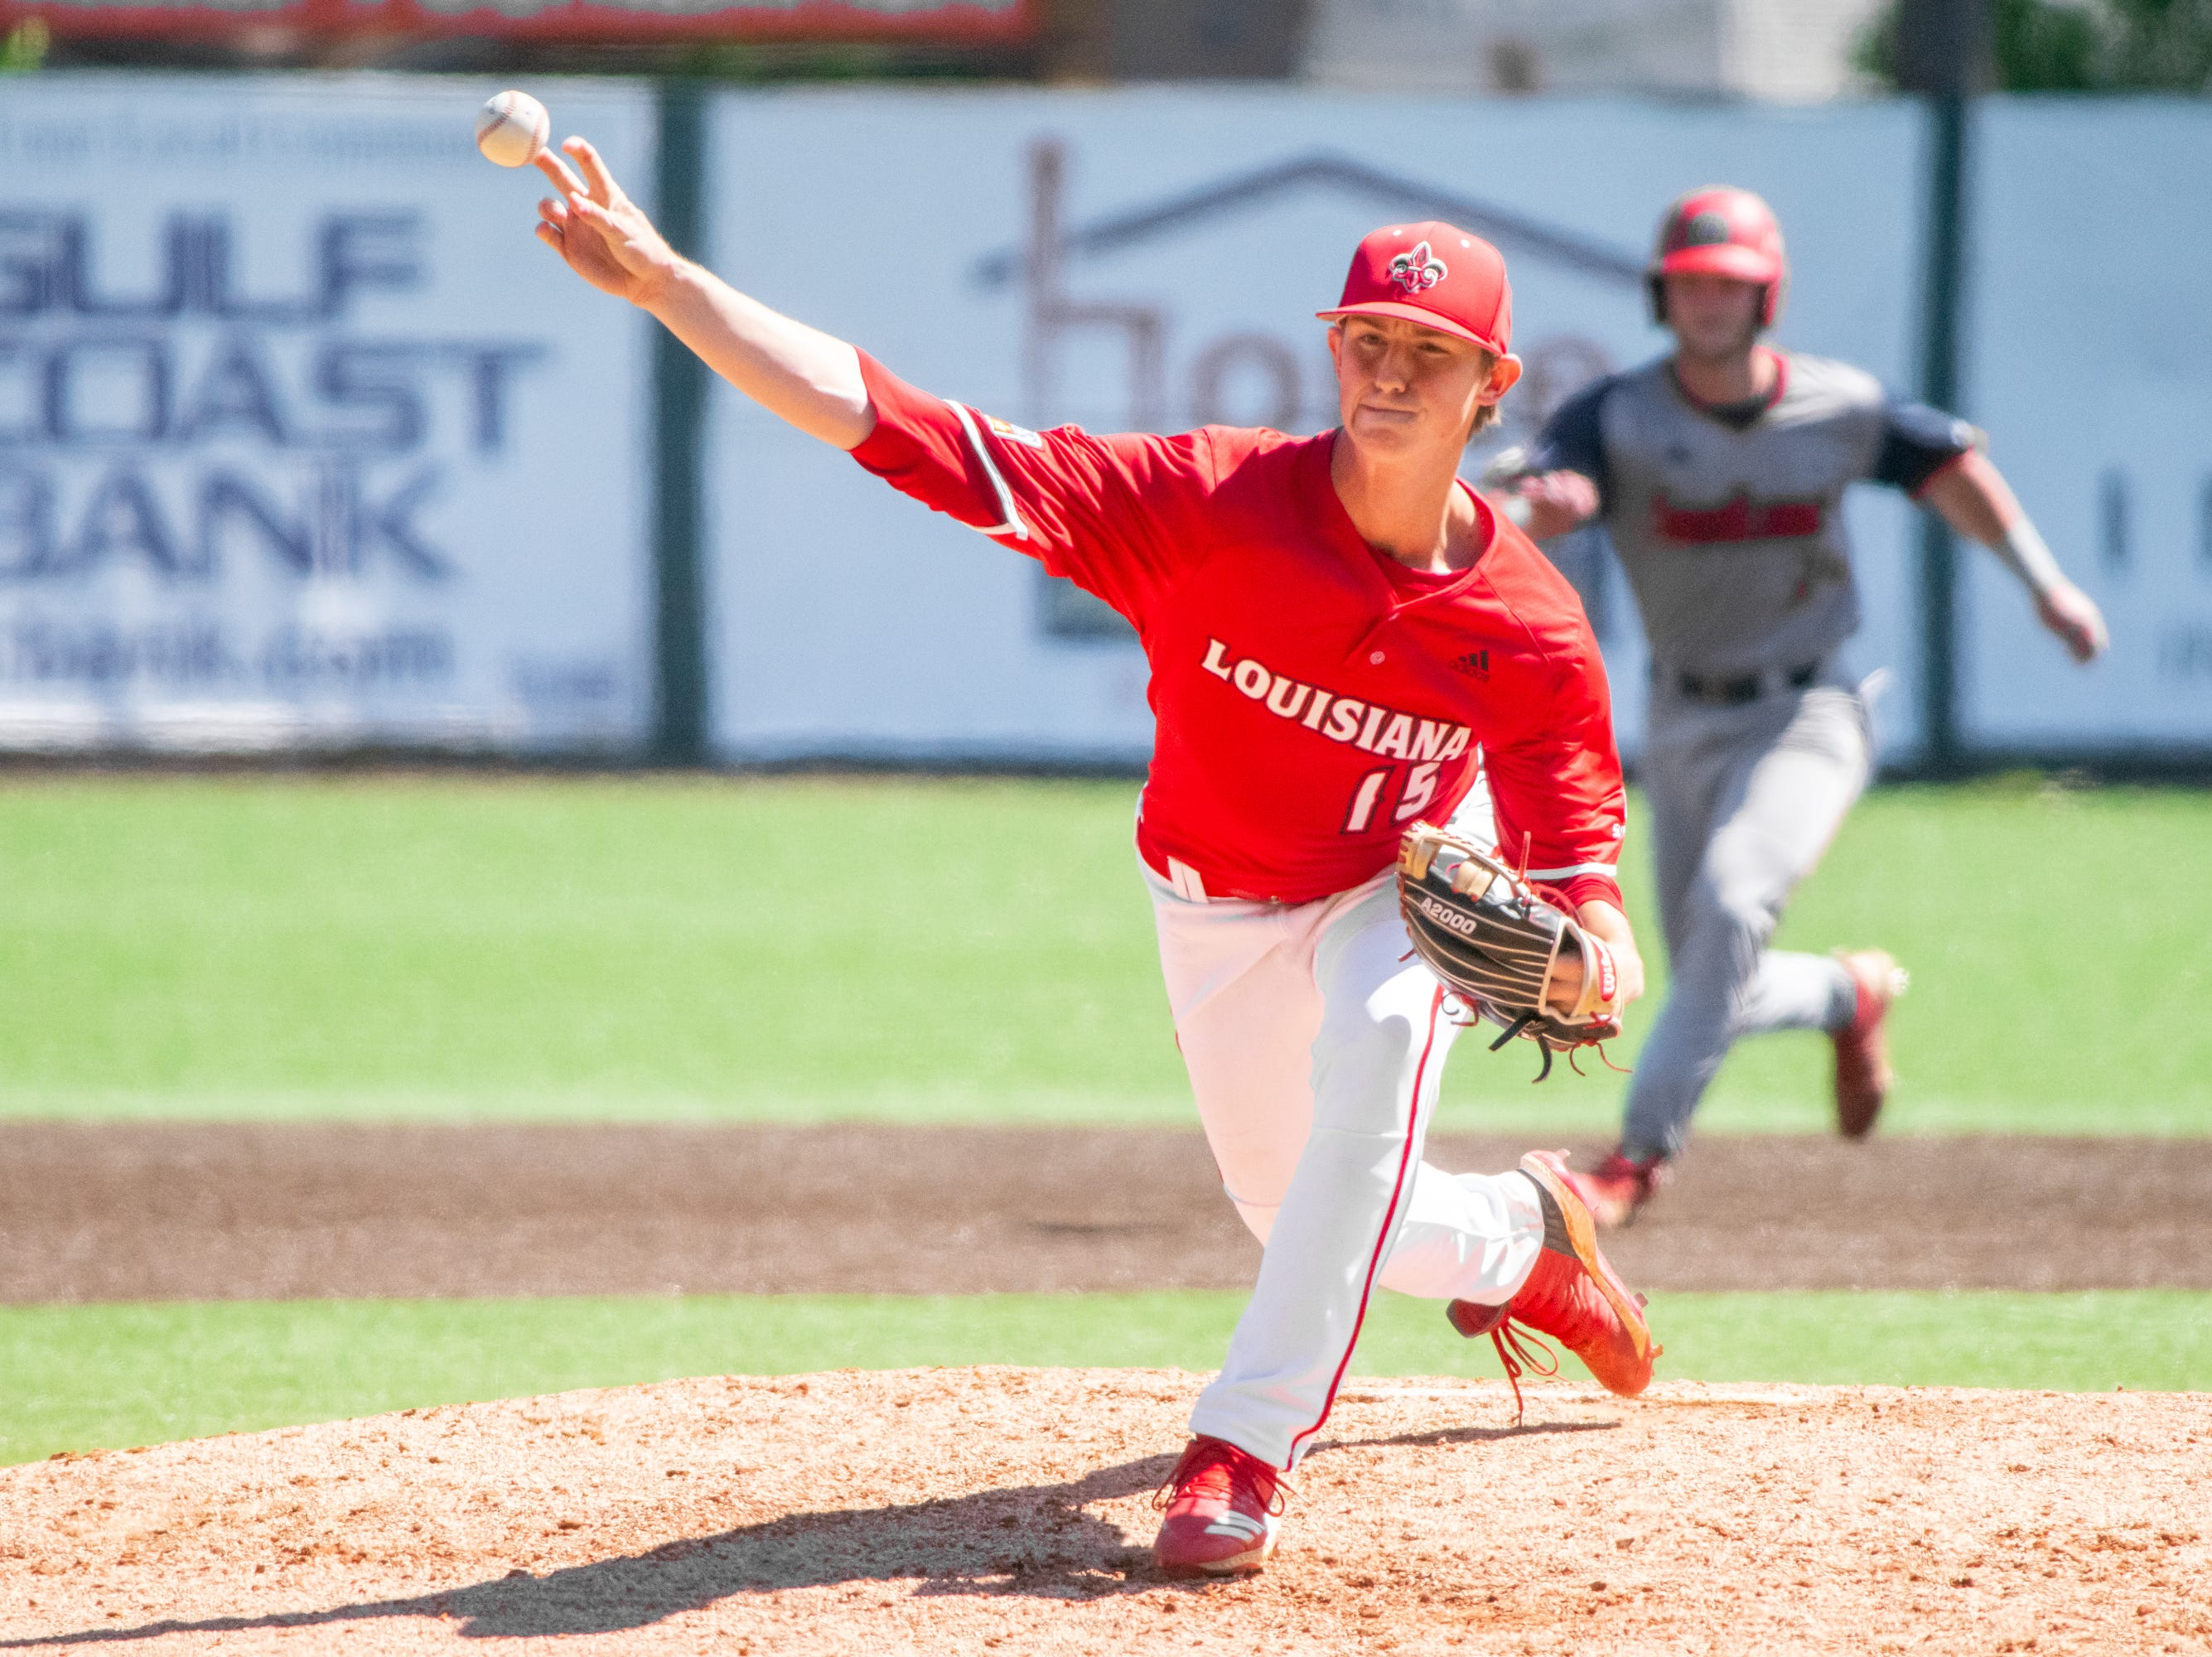 """UL's Jacob Schultz throws a pitch from the mound as the Ragin' Cajuns take on the South Alabama Jaguars at M.L. """"Tigue"""" Moore Field on Sunday, April 14, 2019."""